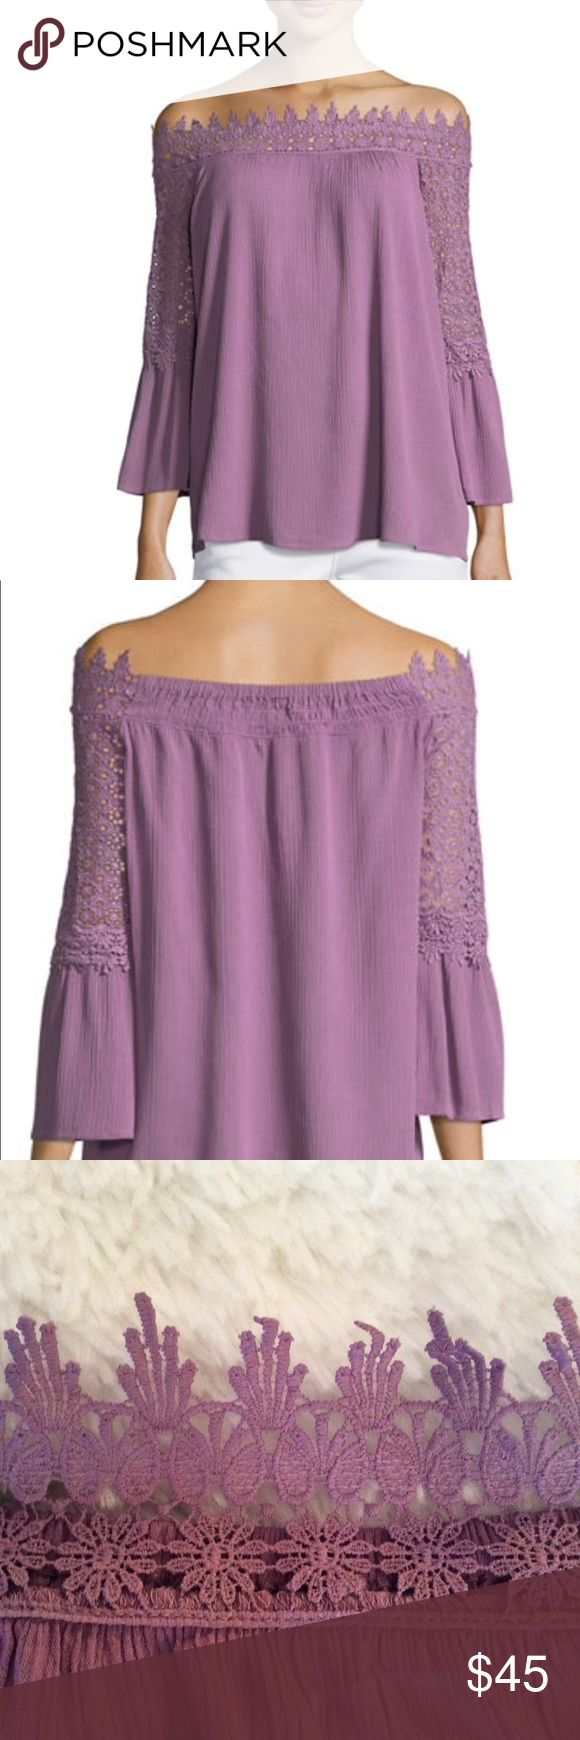 Neiman Marcus Lace Trim Off-the-Shoulder Blouse Off the shoulder neckline.  Three quarter bell sleeves.  In the back, the neckline is plain, no lace.  Beautiful lilac color.  The lilac color is not bright but muted.  Relaxed silhouette. New with tags.  I purchased it on sale at Neiman Marcus.  Approximate measurements- 20 inches from armpit to armpit and 19.5 inches in length. NM Neiman Marcus Tops Blouses